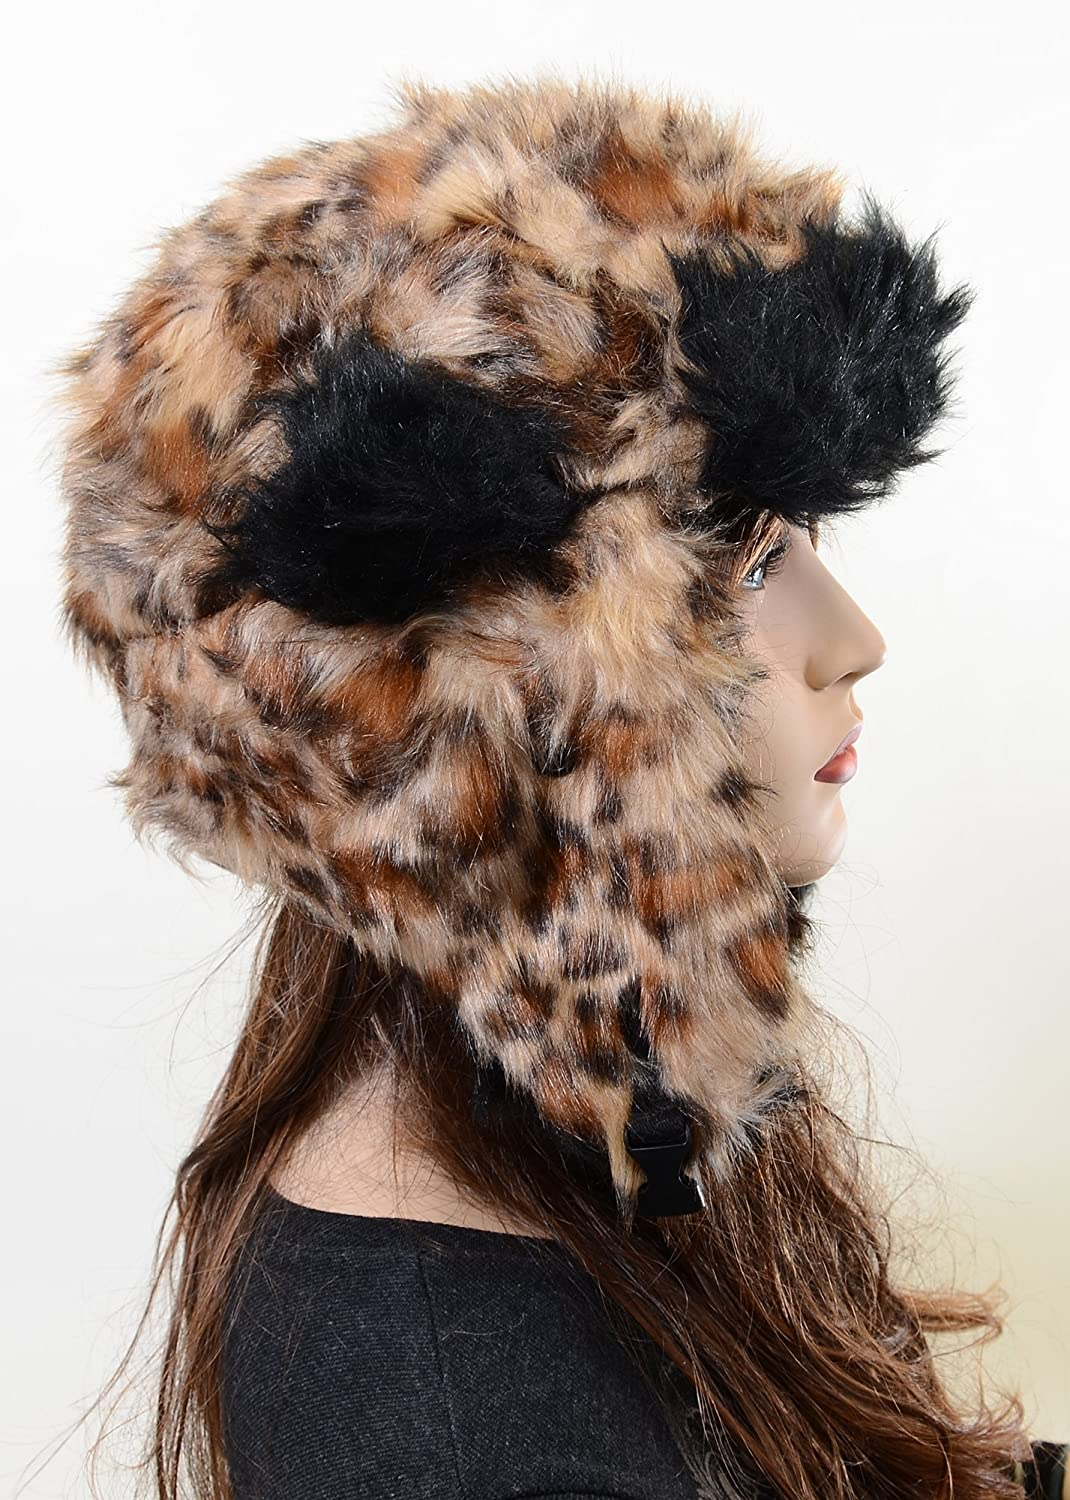 eb10f8d1683 Amazon.com  Furry All Over Vegan Friendly Leopard Cold Weather Ushanka  Trapper Hat  Clothing